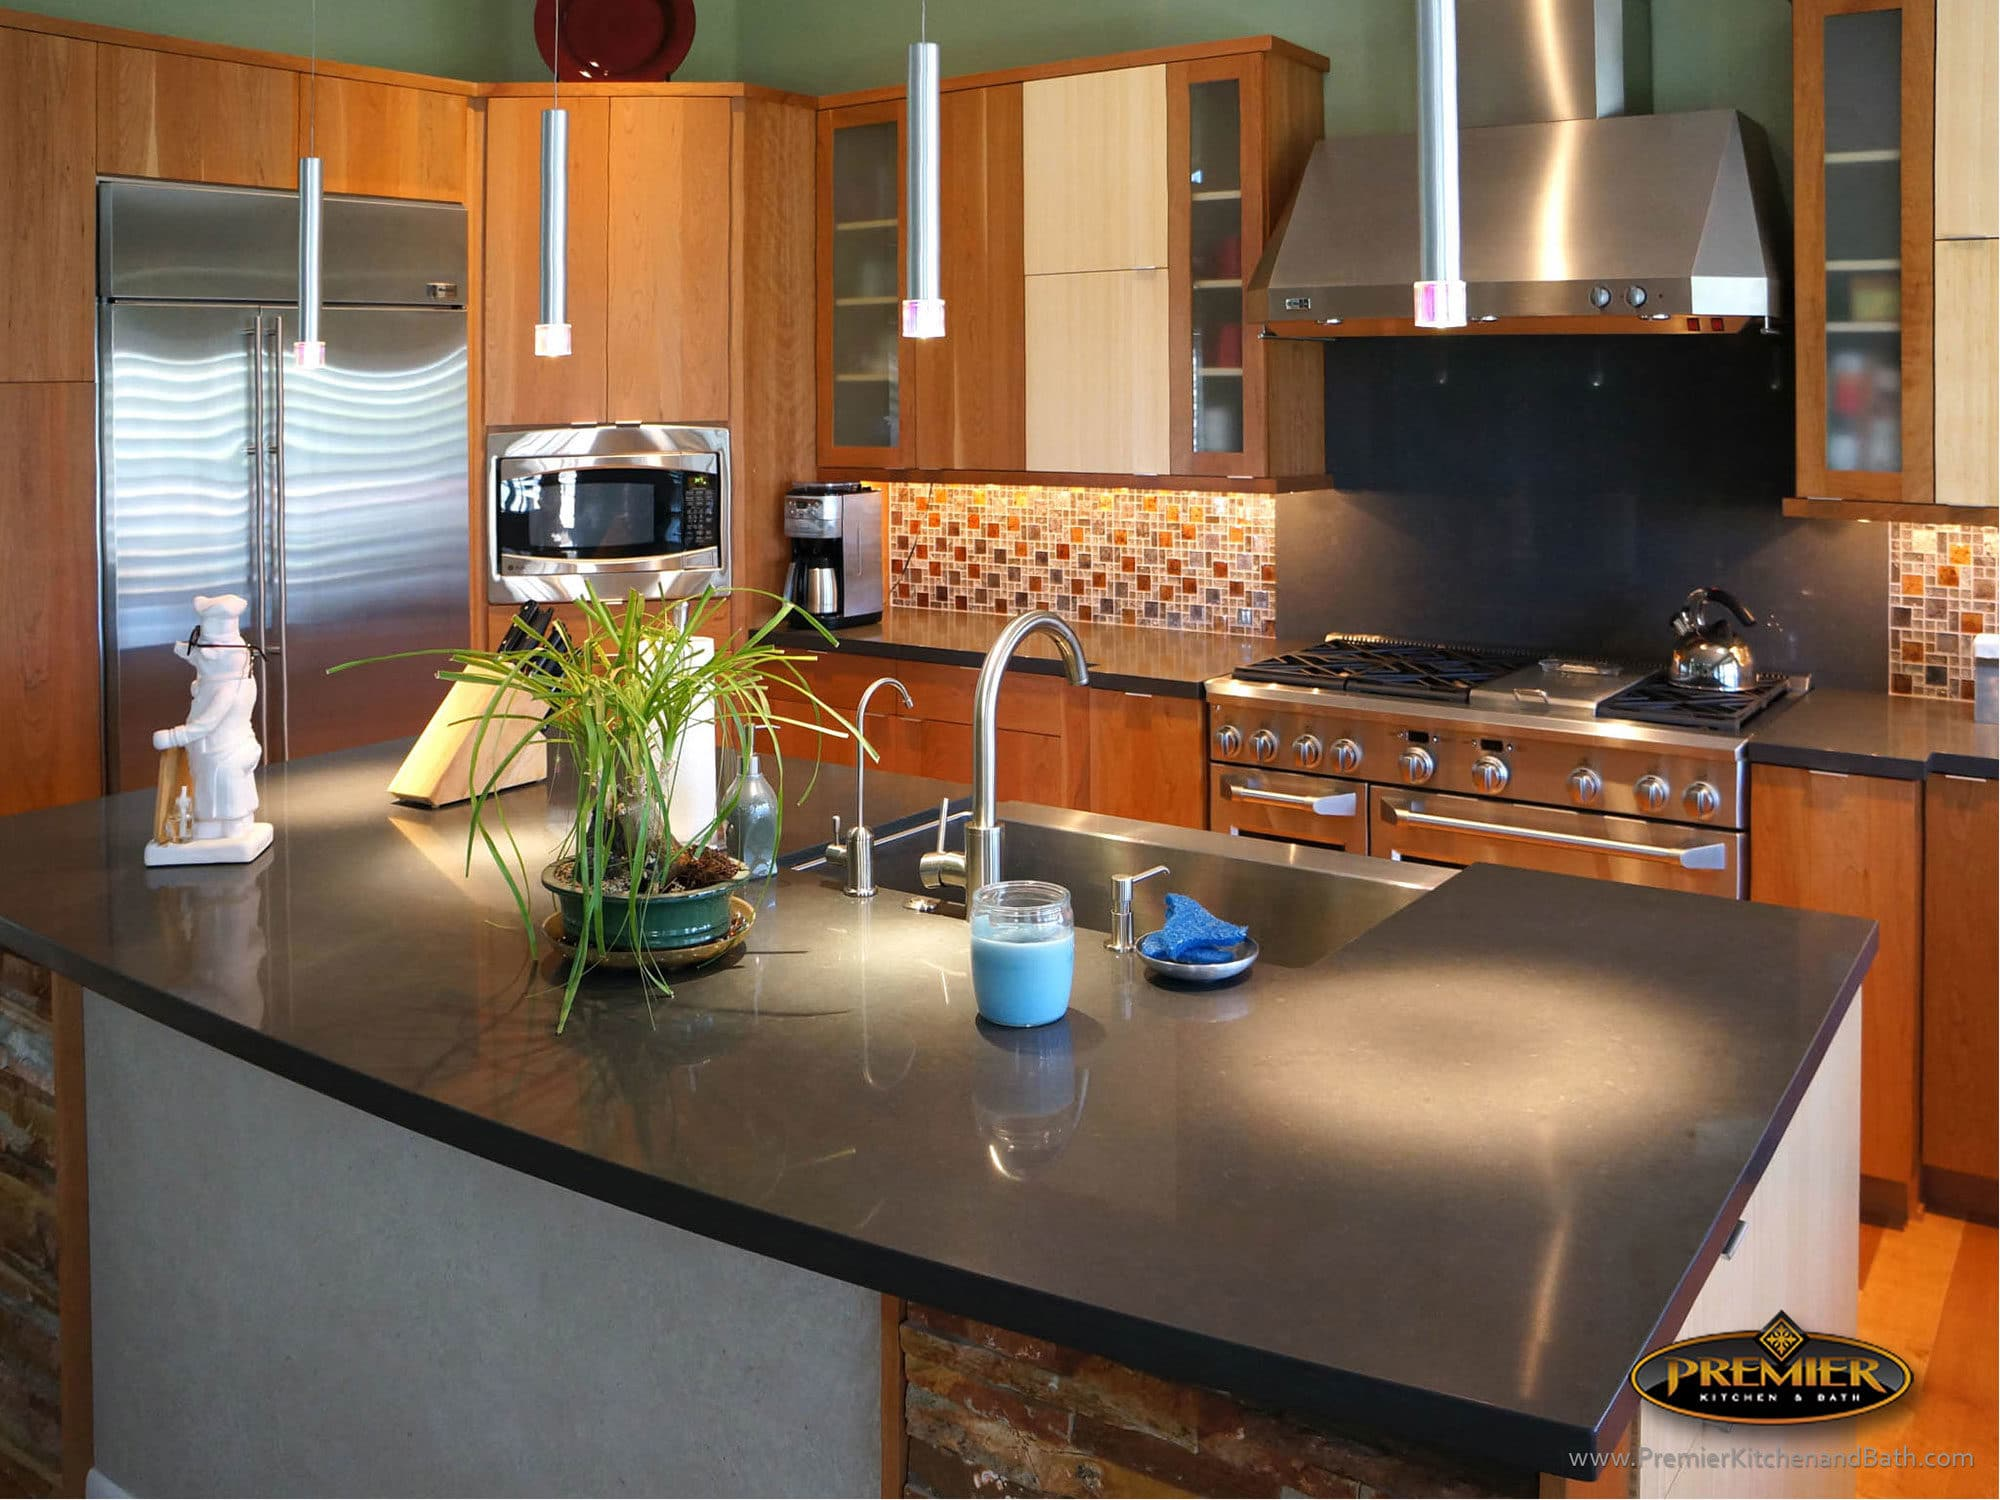 Scottsdale Kitchen Remodeling | Premier Kitchen and Bath